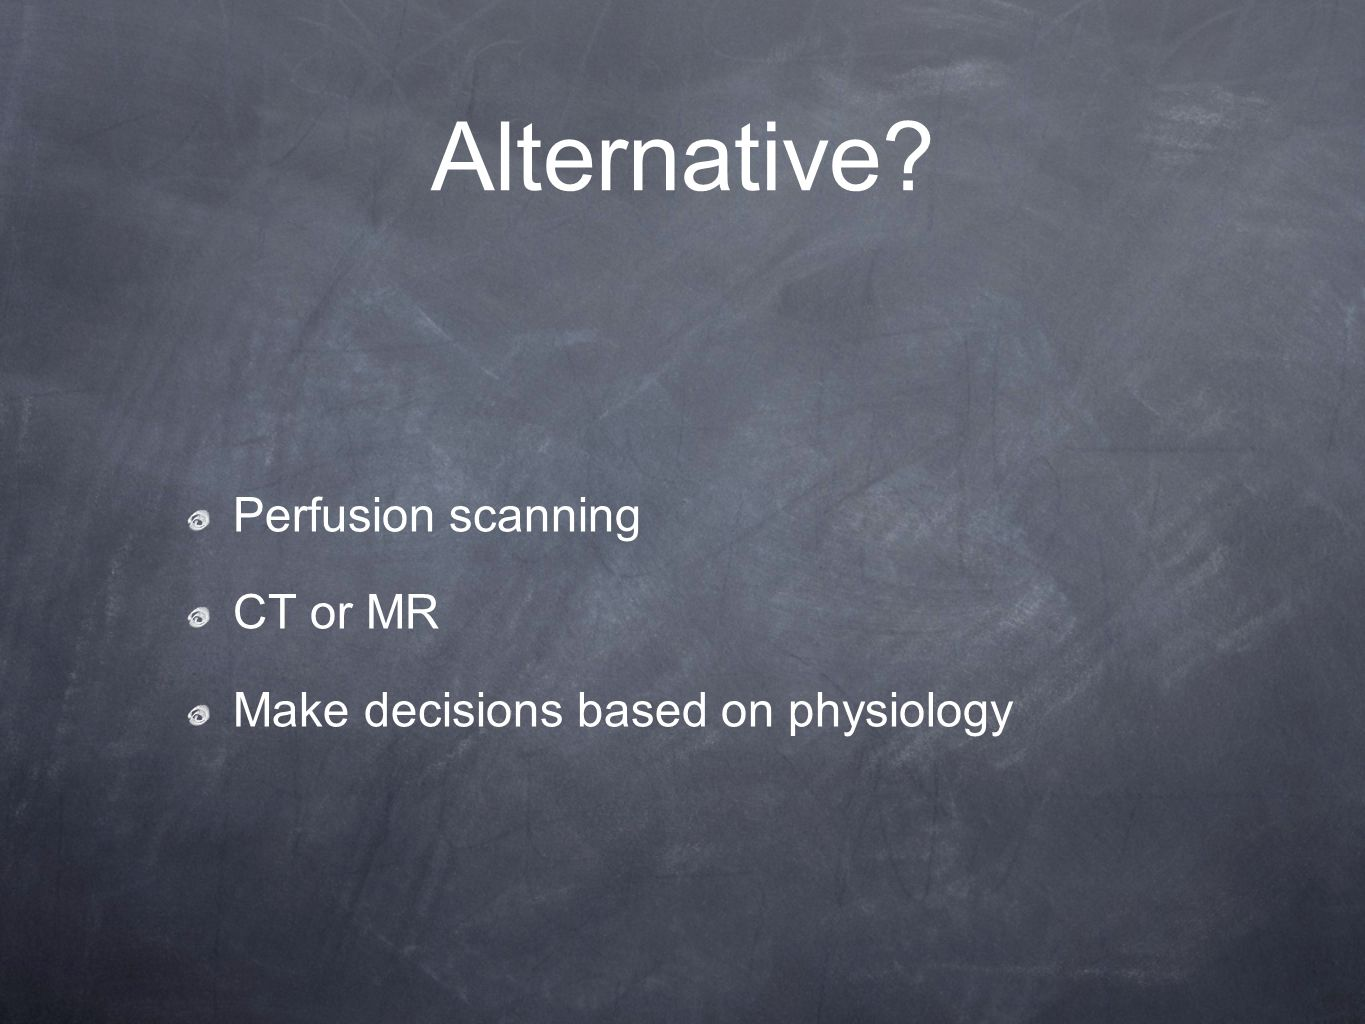 Alternative Perfusion scanning CT or MR Make decisions based on physiology